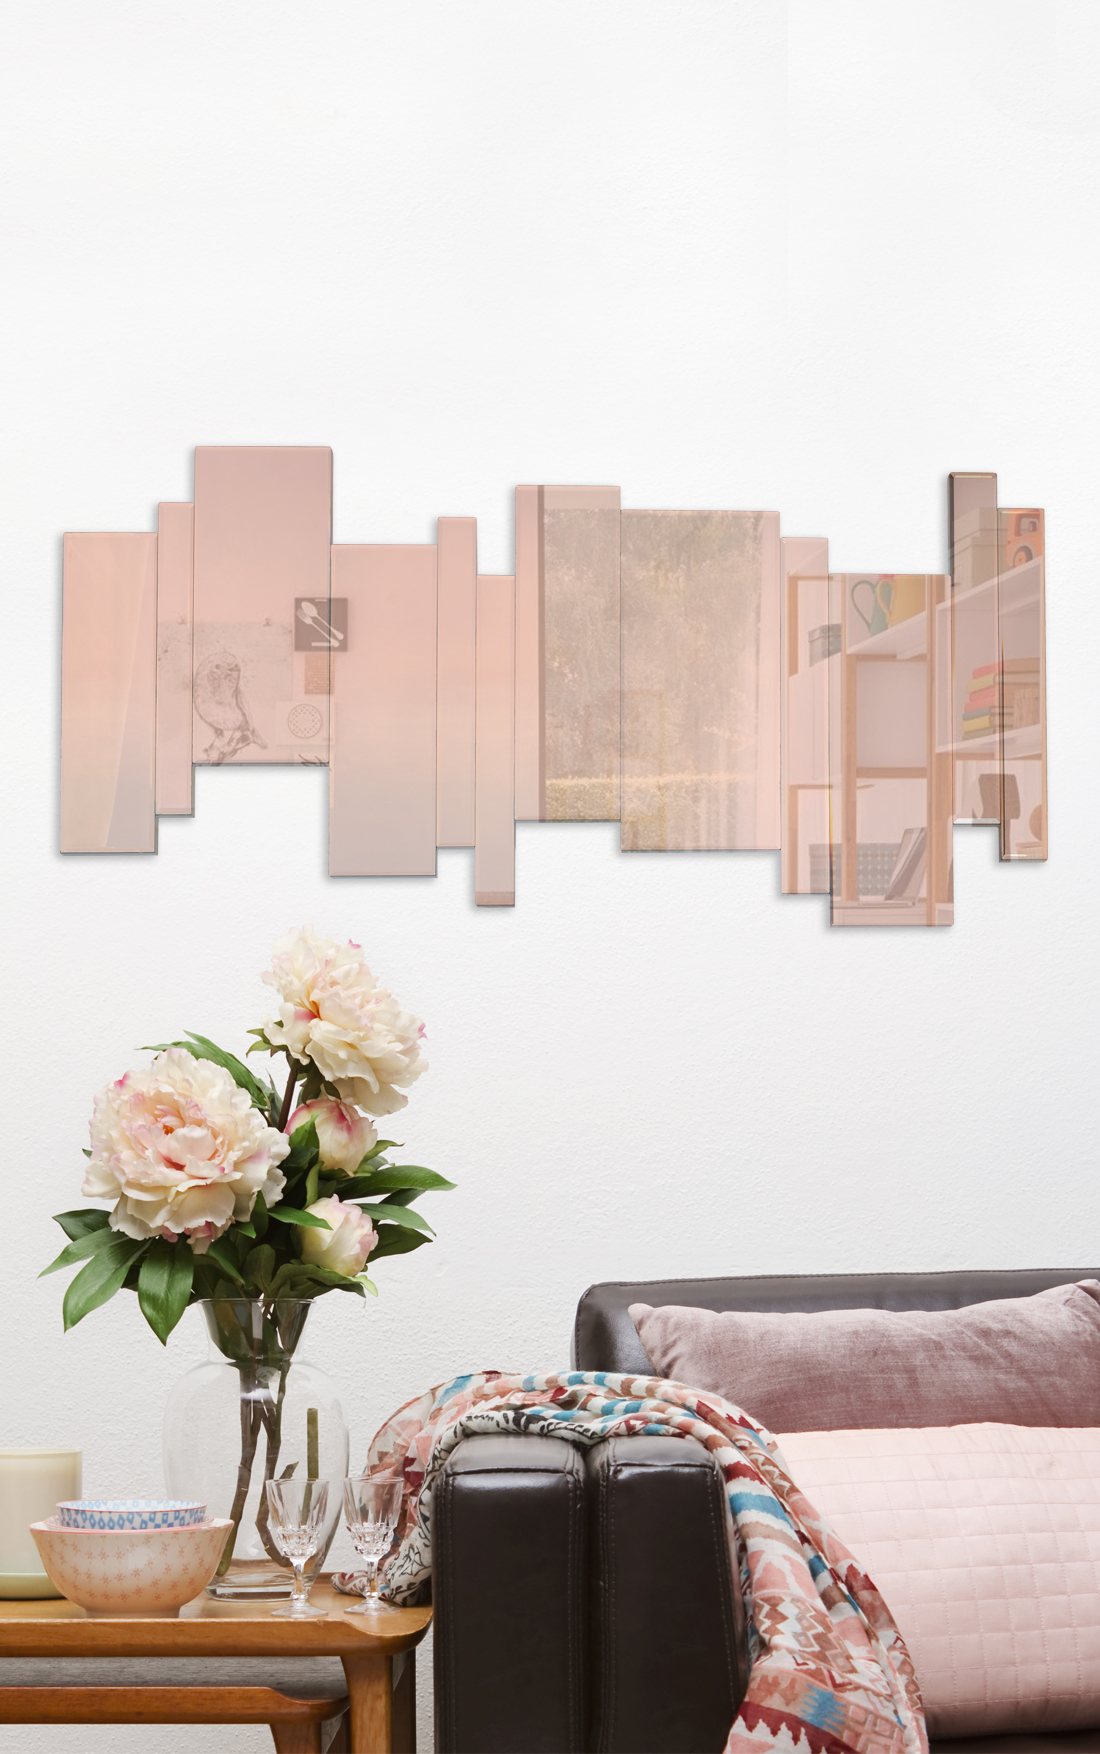 Grand miroir rose design et original